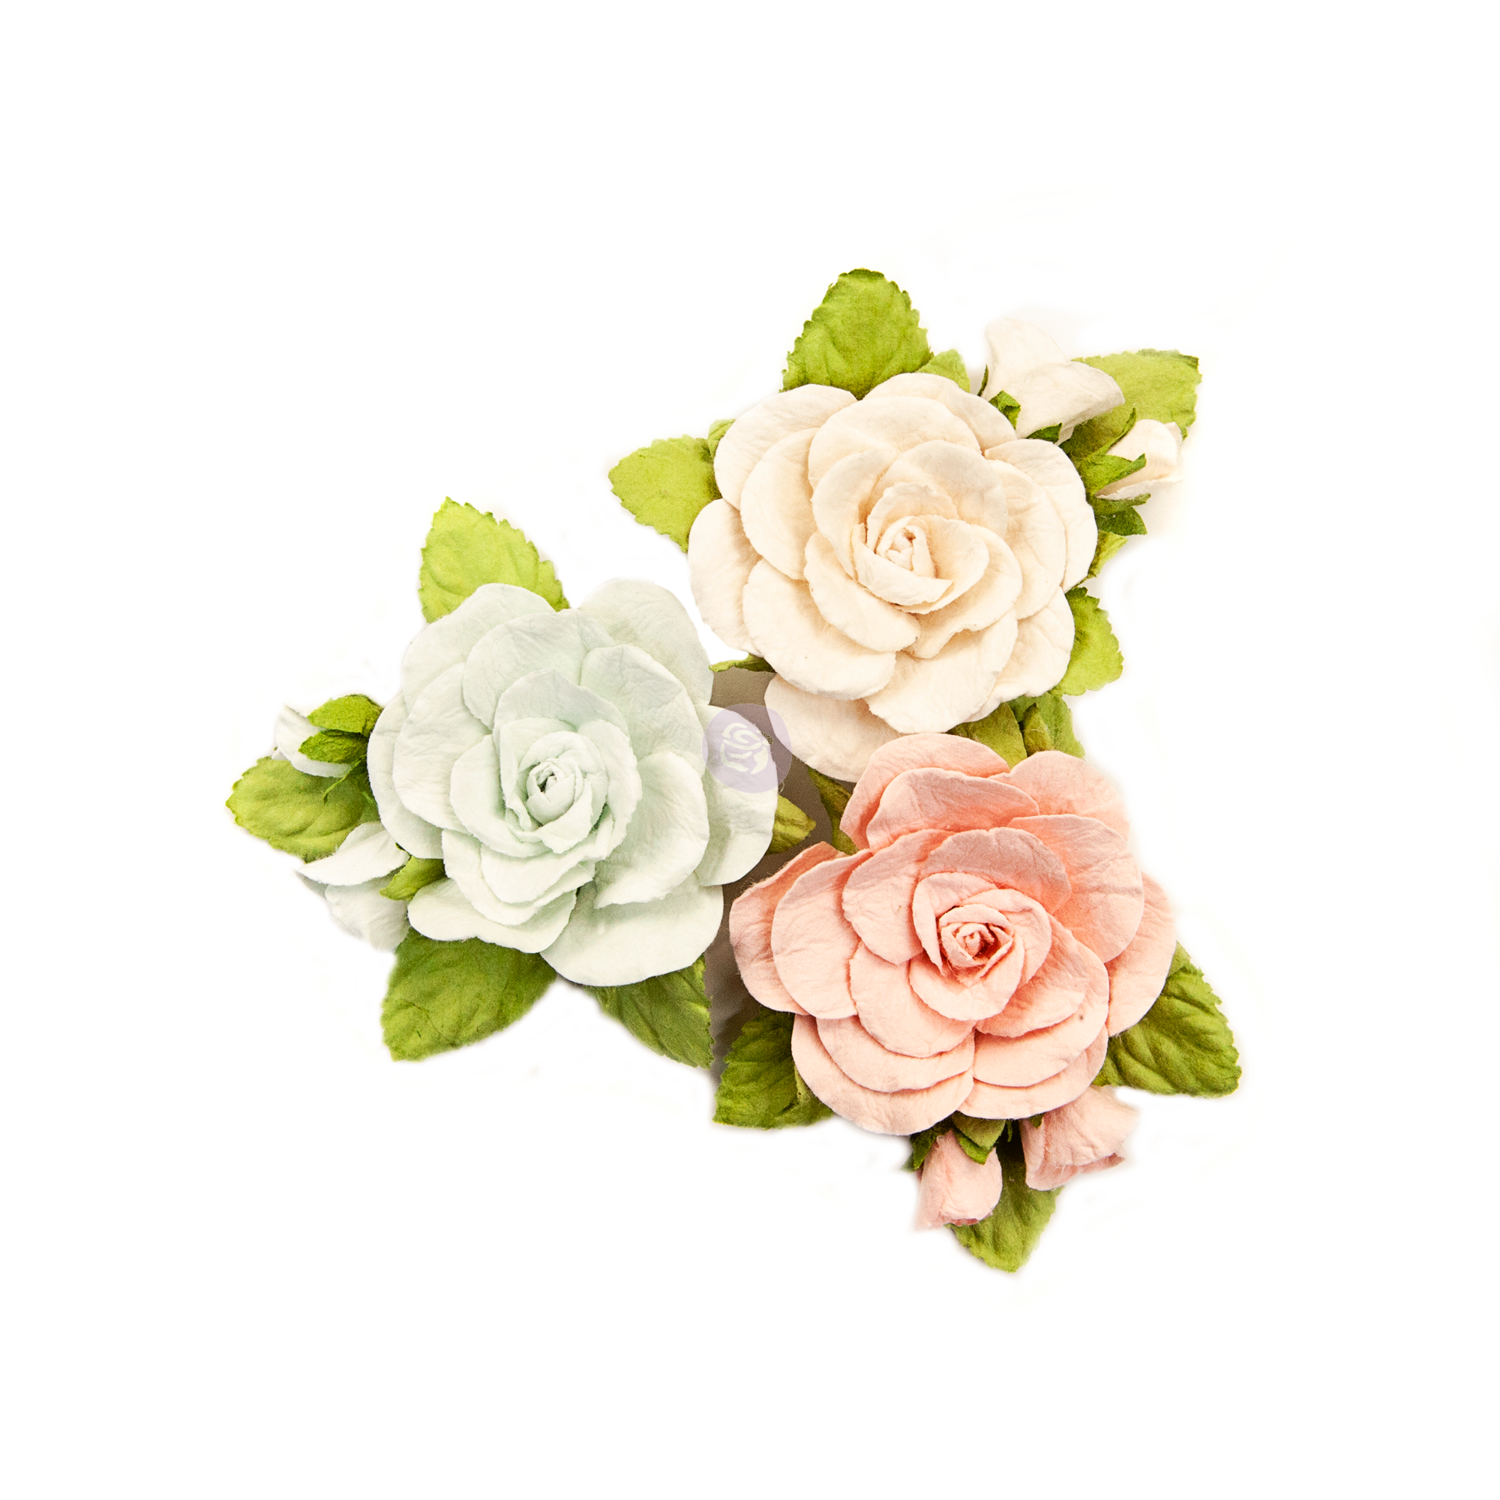 Sweet Roses - Poetic Rose Flowers - Prima